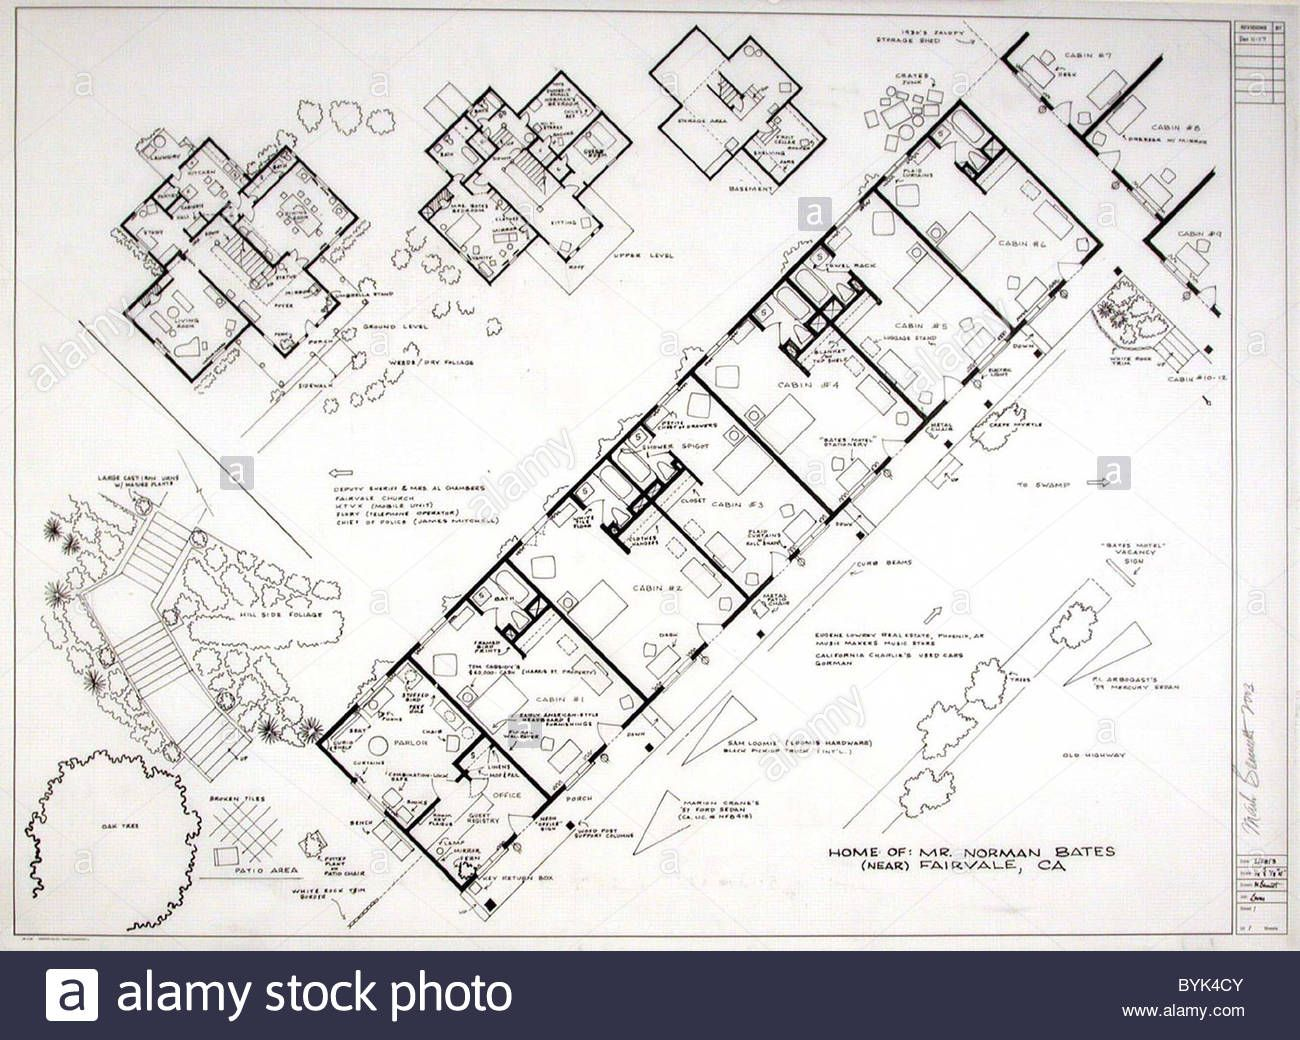 fantasy floor plans psycho bates motel ever wanted to build a